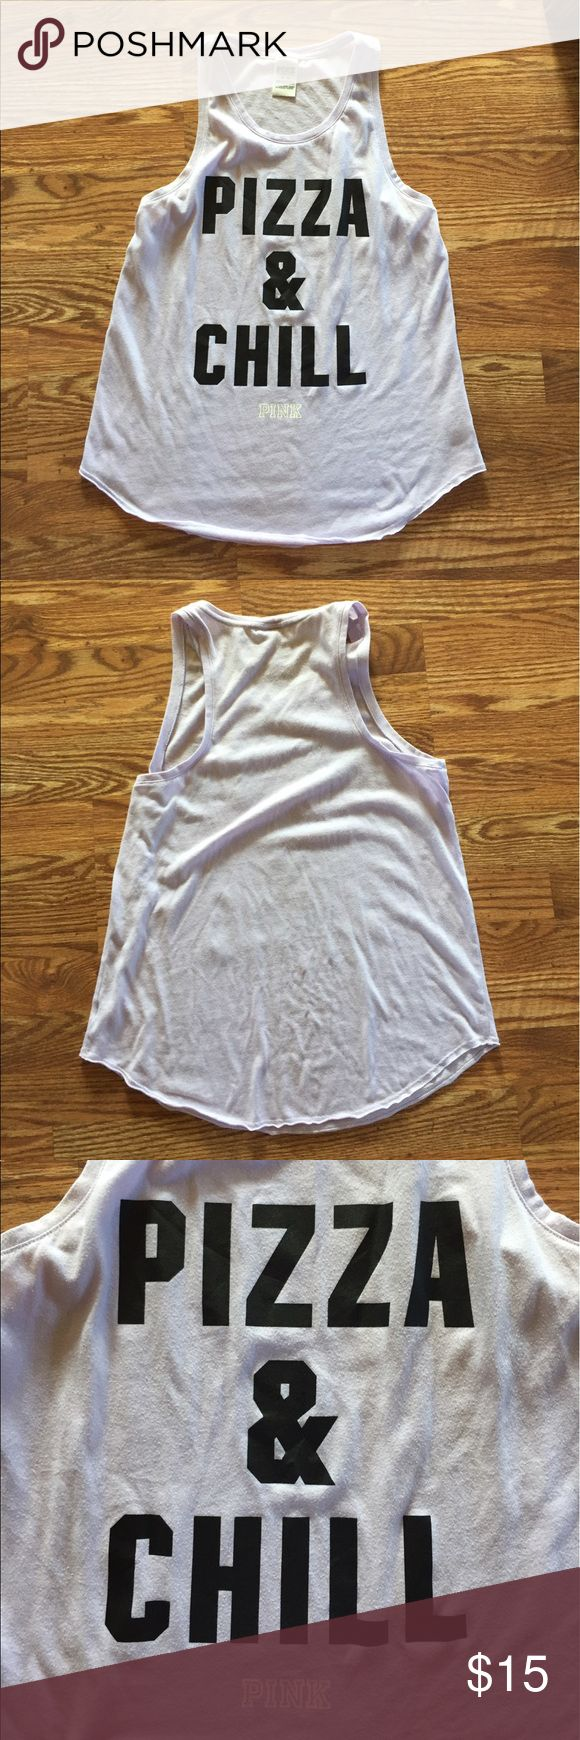 "PINK ""Pizza & Chill"" Tank Top This tank top is a light lilac purple color, with ""Pizza & Chill"" written in large black letters across the front. It is made of a light weight, breathable material. It is slightly sheer. Good condition, no stains or rips/tears. PINK Victoria's Secret Tops Tank Tops"